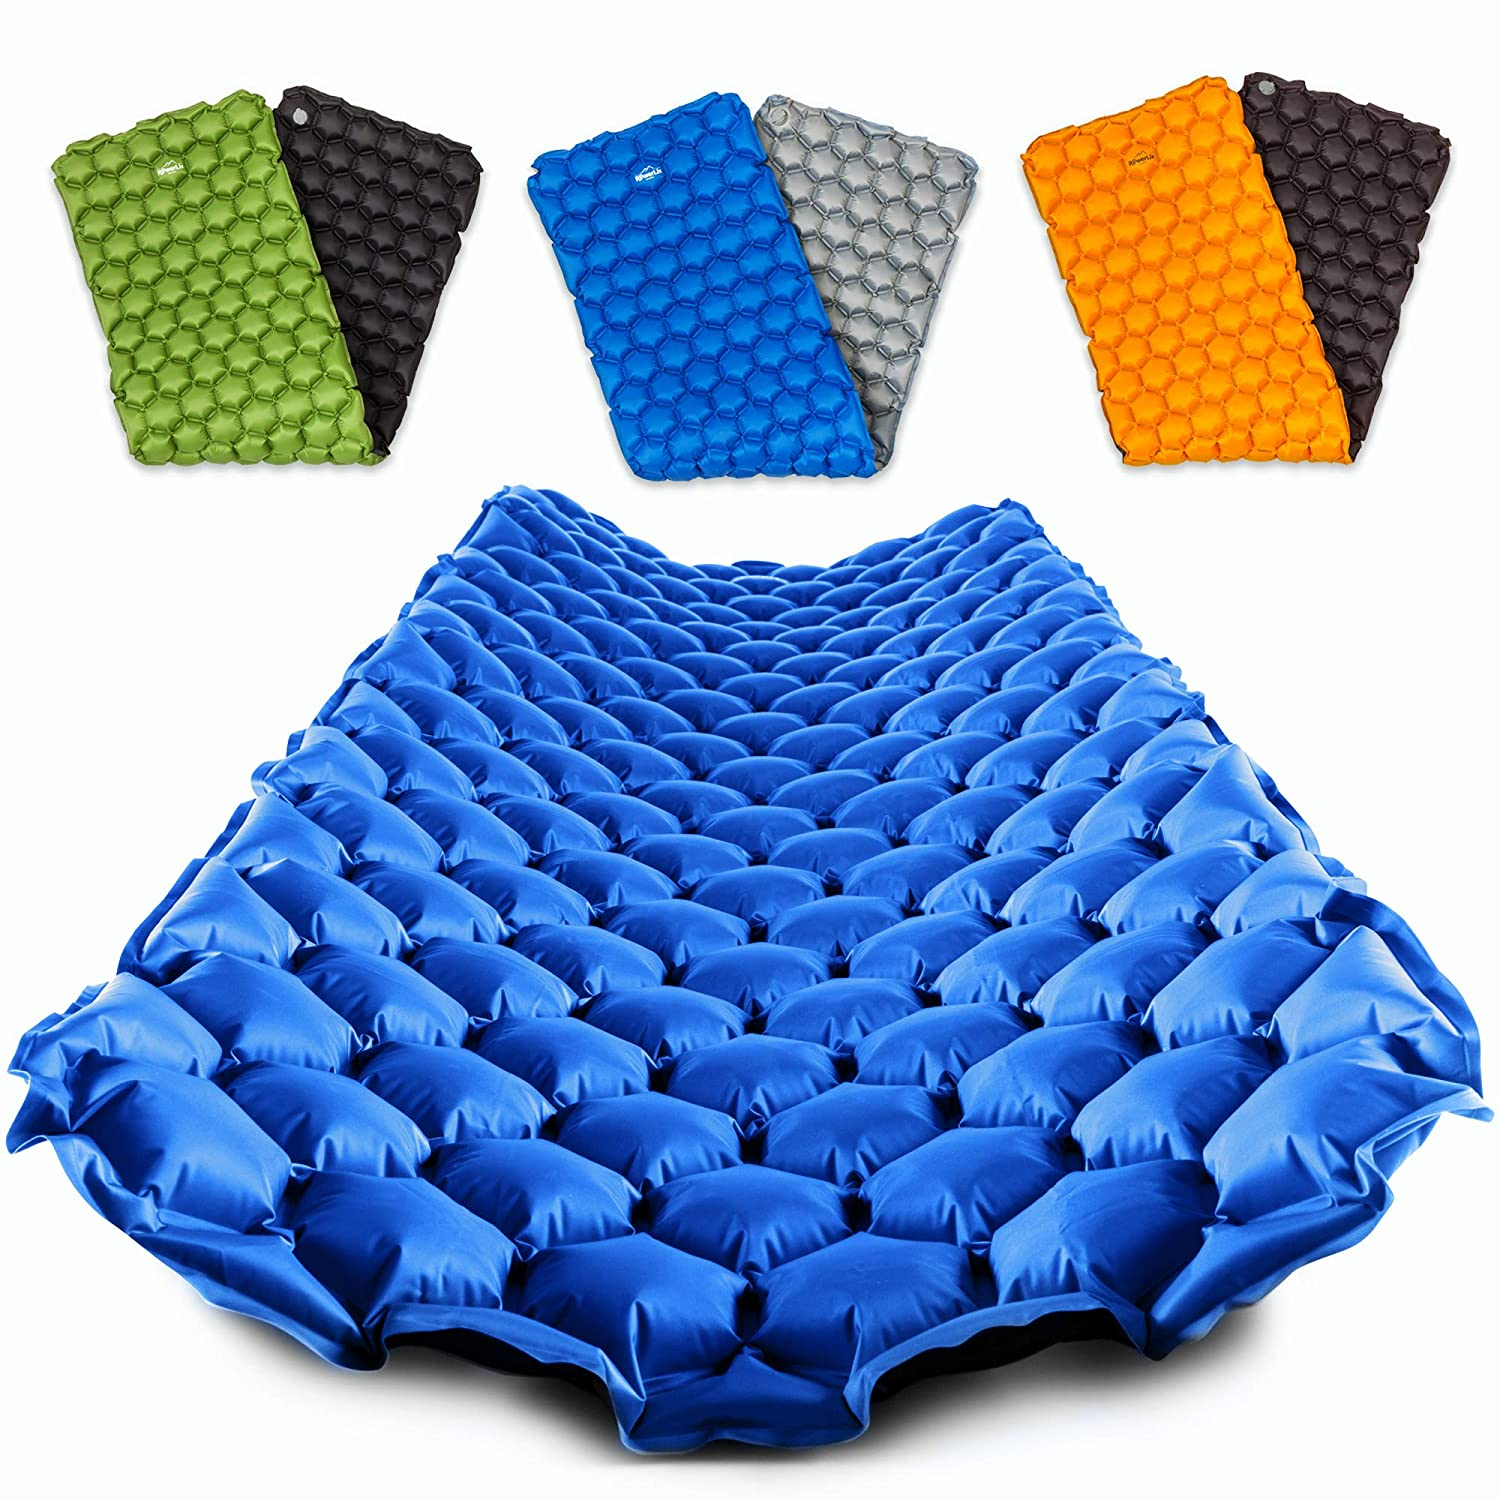 POWERLIX Sleeping Pad – Ultralight Inflatable Sleeping Mat, Best Self Serving Pad for Camping, Backpacking, Hiking – Airpad, Inflating Bag, Carry Bag, ...